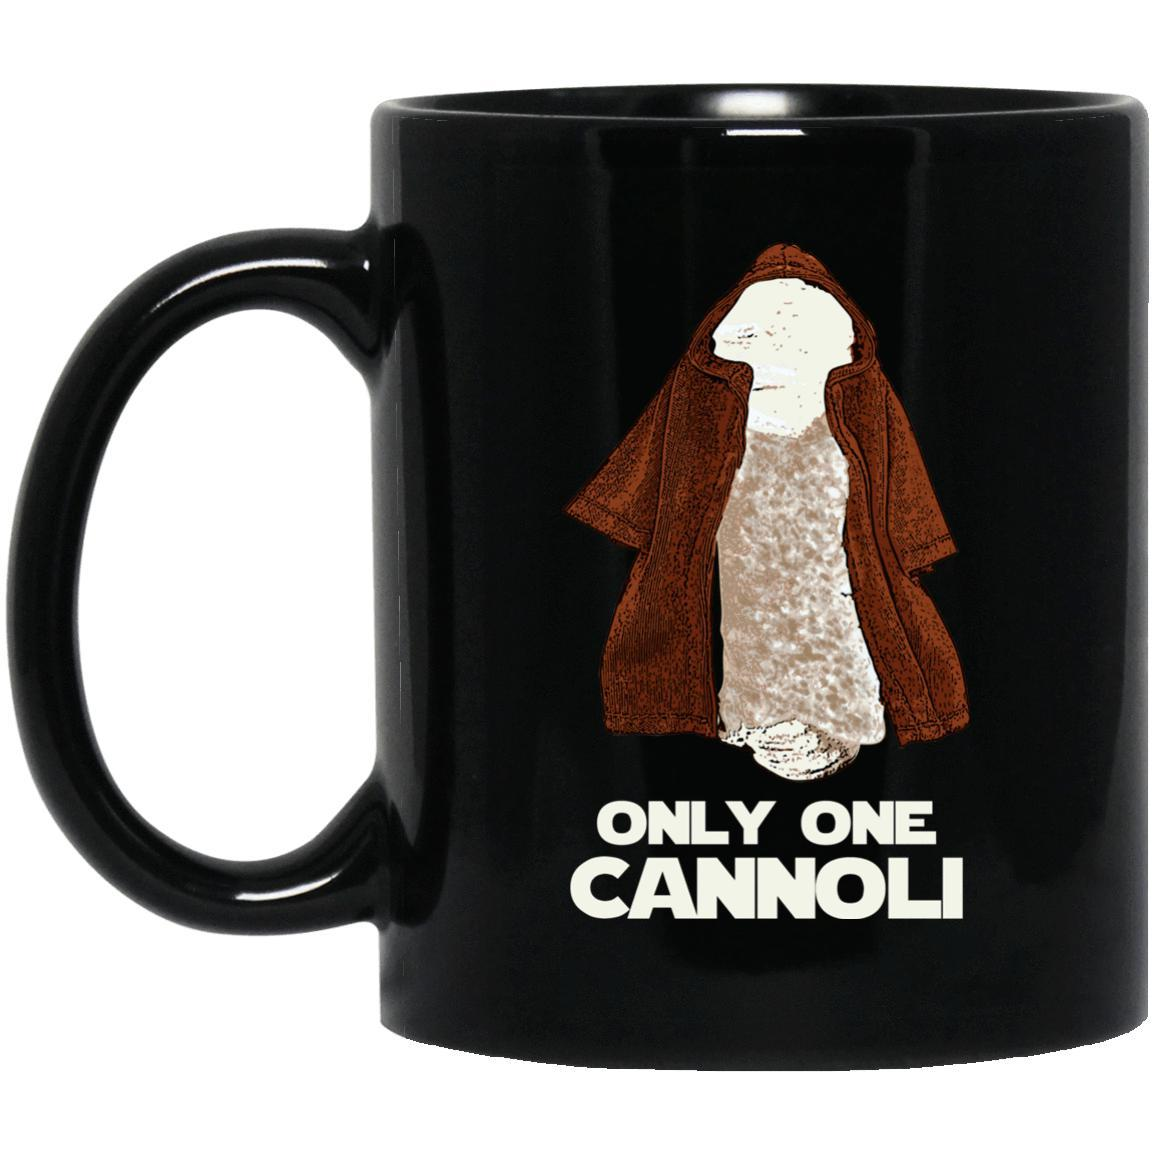 Only One Cannoli Mugs